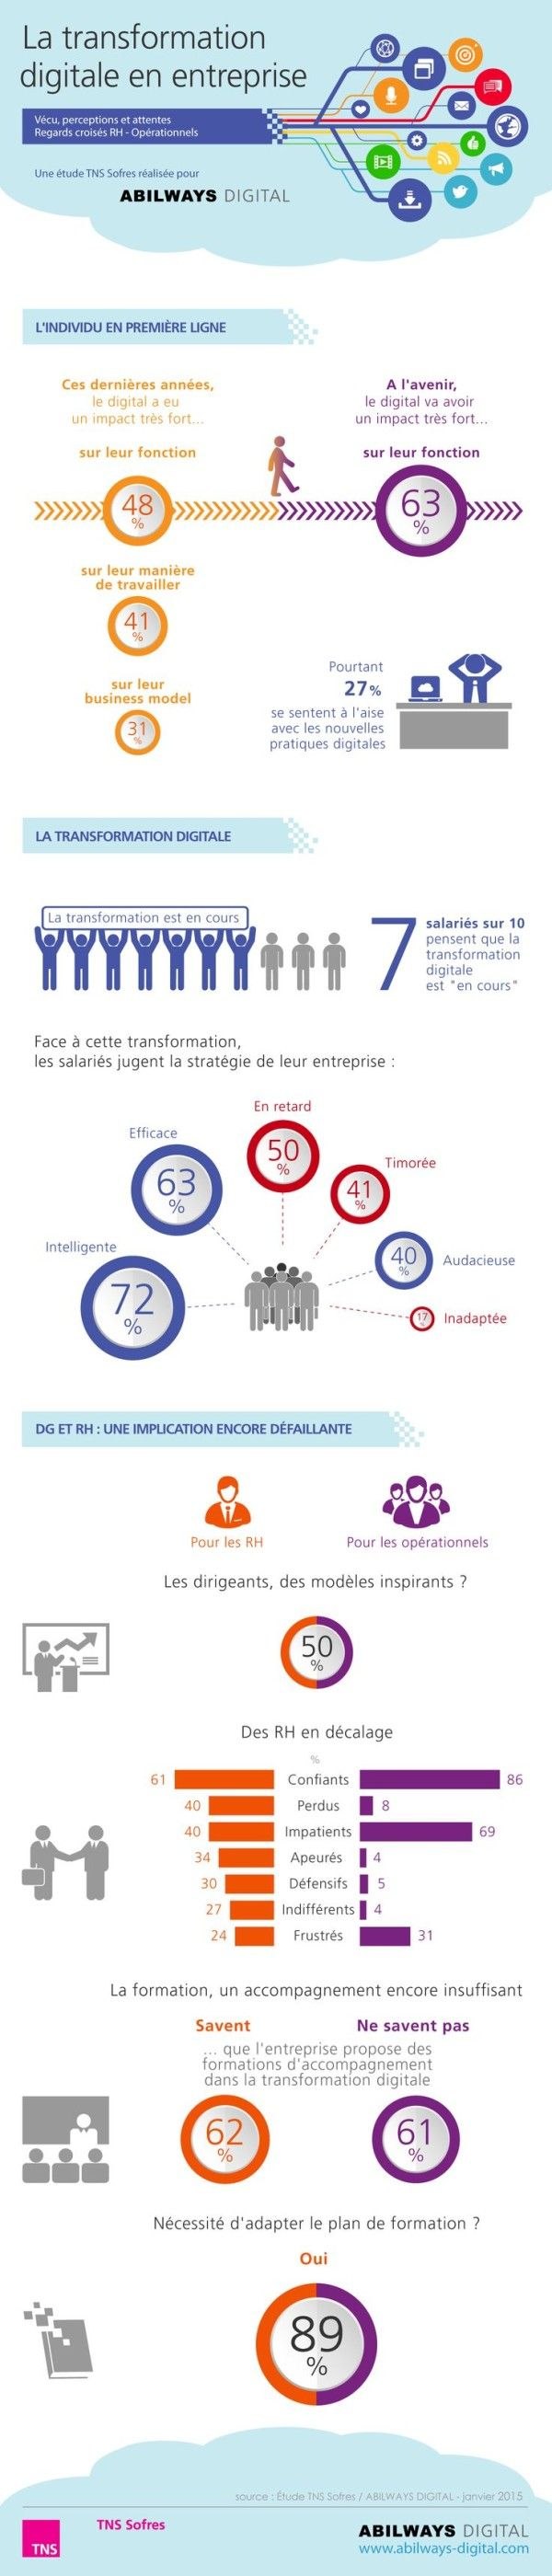 tns-sofres-infographie-transformation-digitale